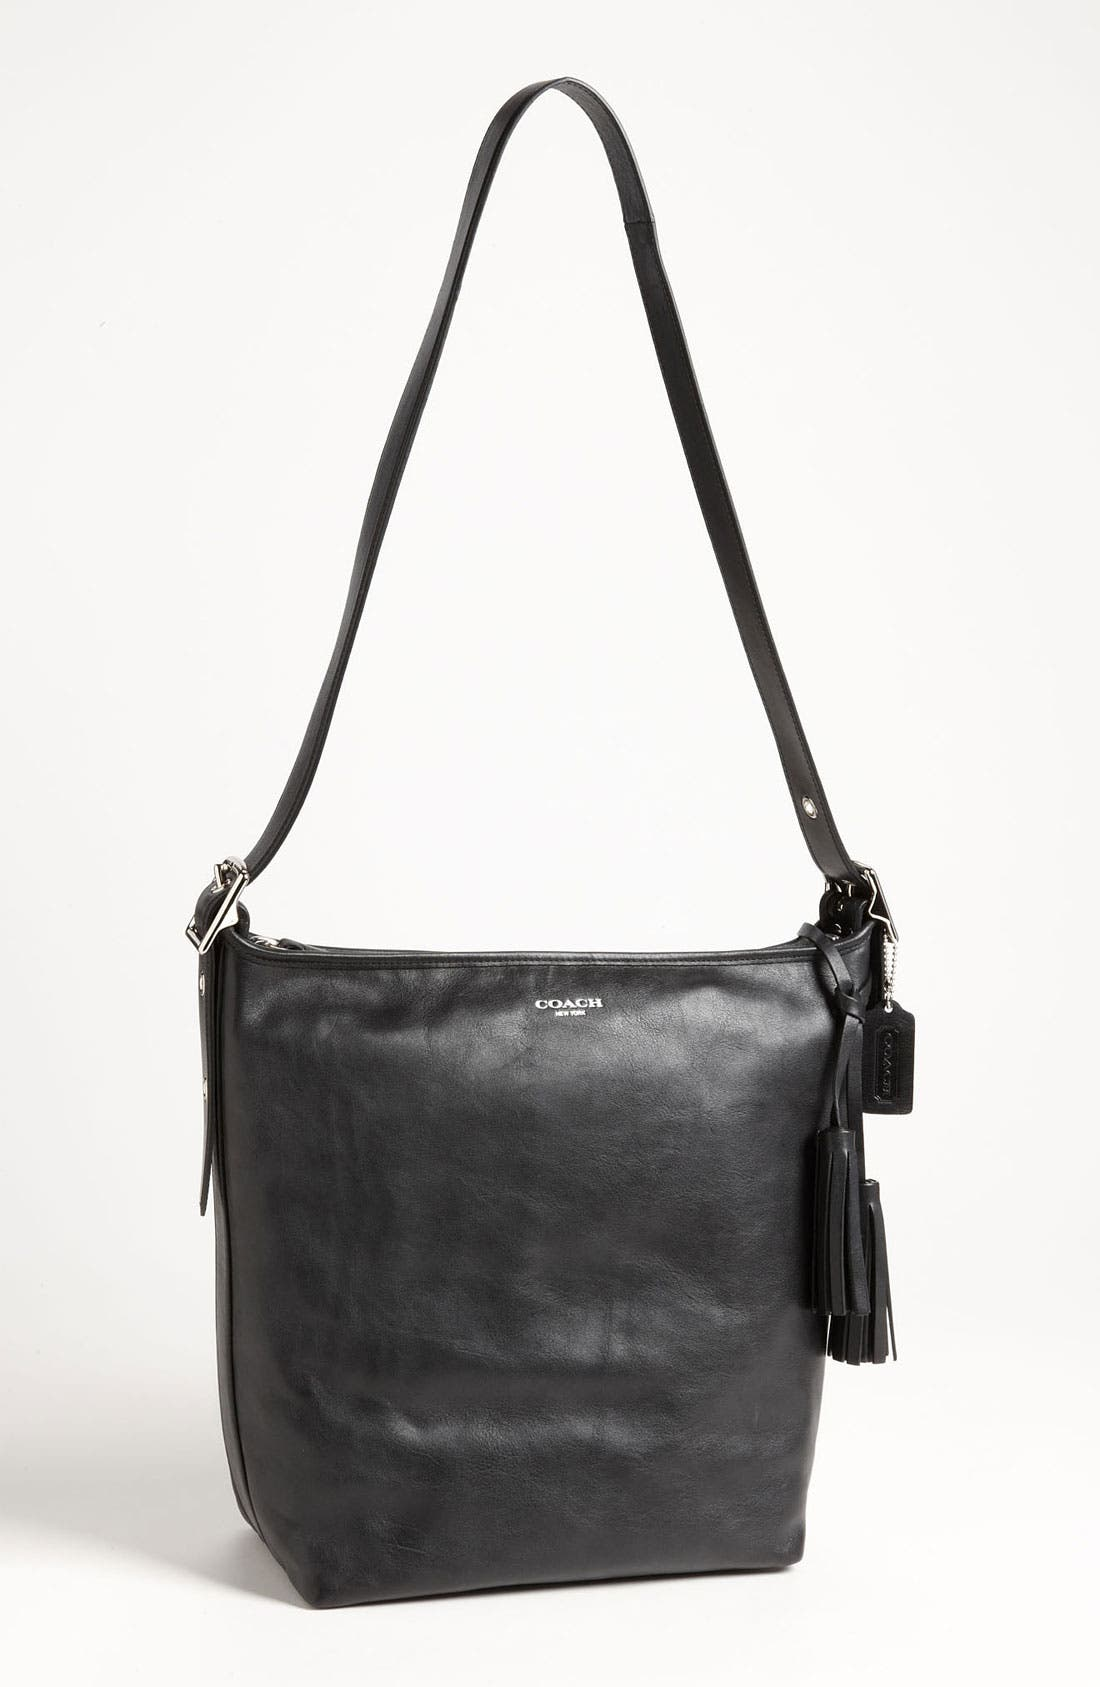 Alternate Image 1 Selected - COACH 'Legacy - Duffle' Tasseled Leather Shoulder Bag